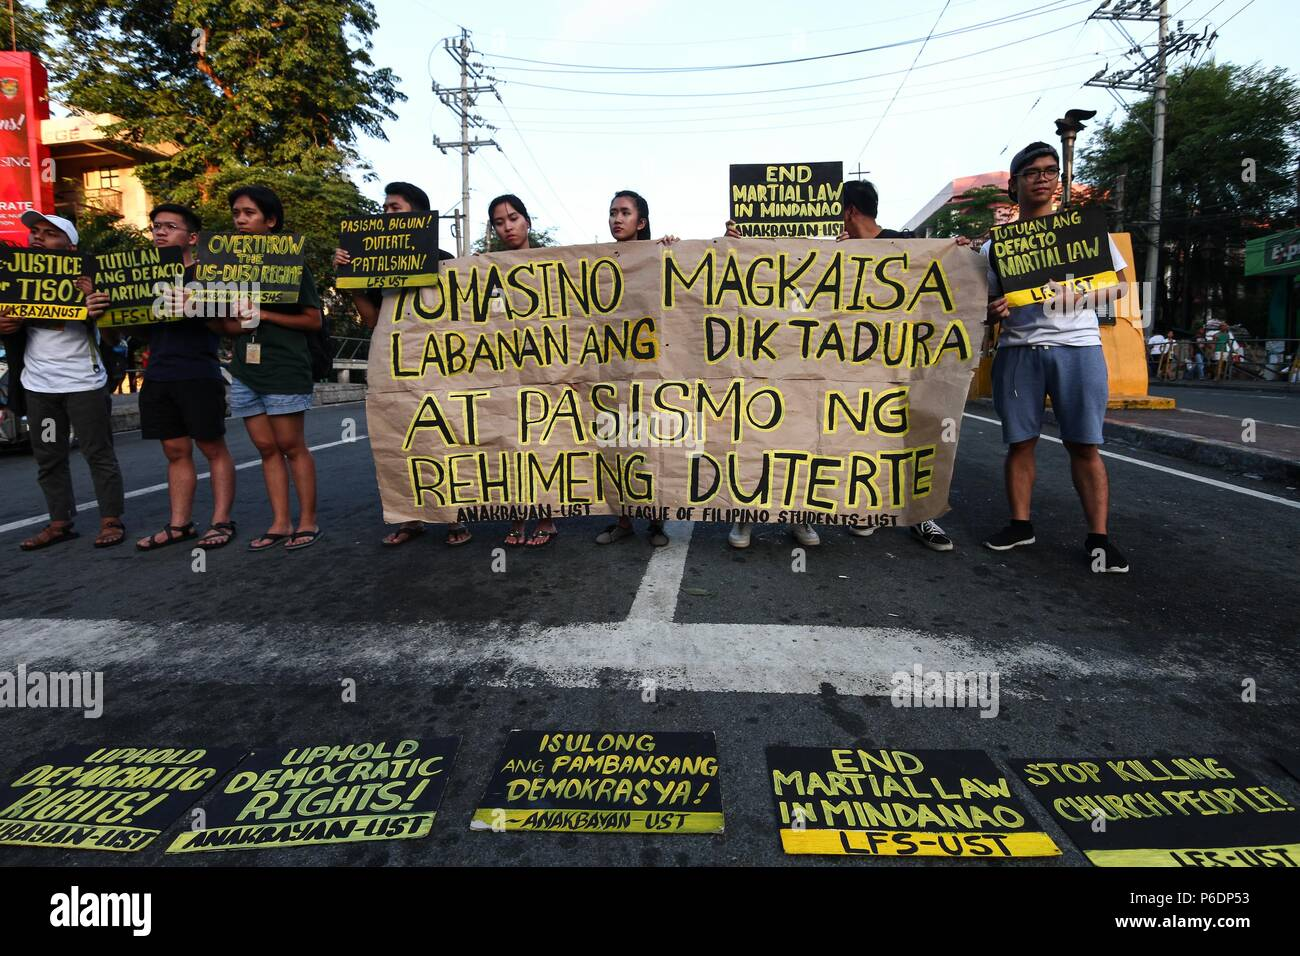 Students holding placards and a banner during the protest. Students from the University of Santo Thomas staged a lightning rally near the presidential palace in Mendiola, Friday afternoon, against the recent deaths of Catholic priests. It was Part of the nationwide Black Friday protests, the students called for justice for Tisoy Argoncillo's death while in police detention for loitering. The group also called for the end of the Martial Law in Mindanao. - Stock Image